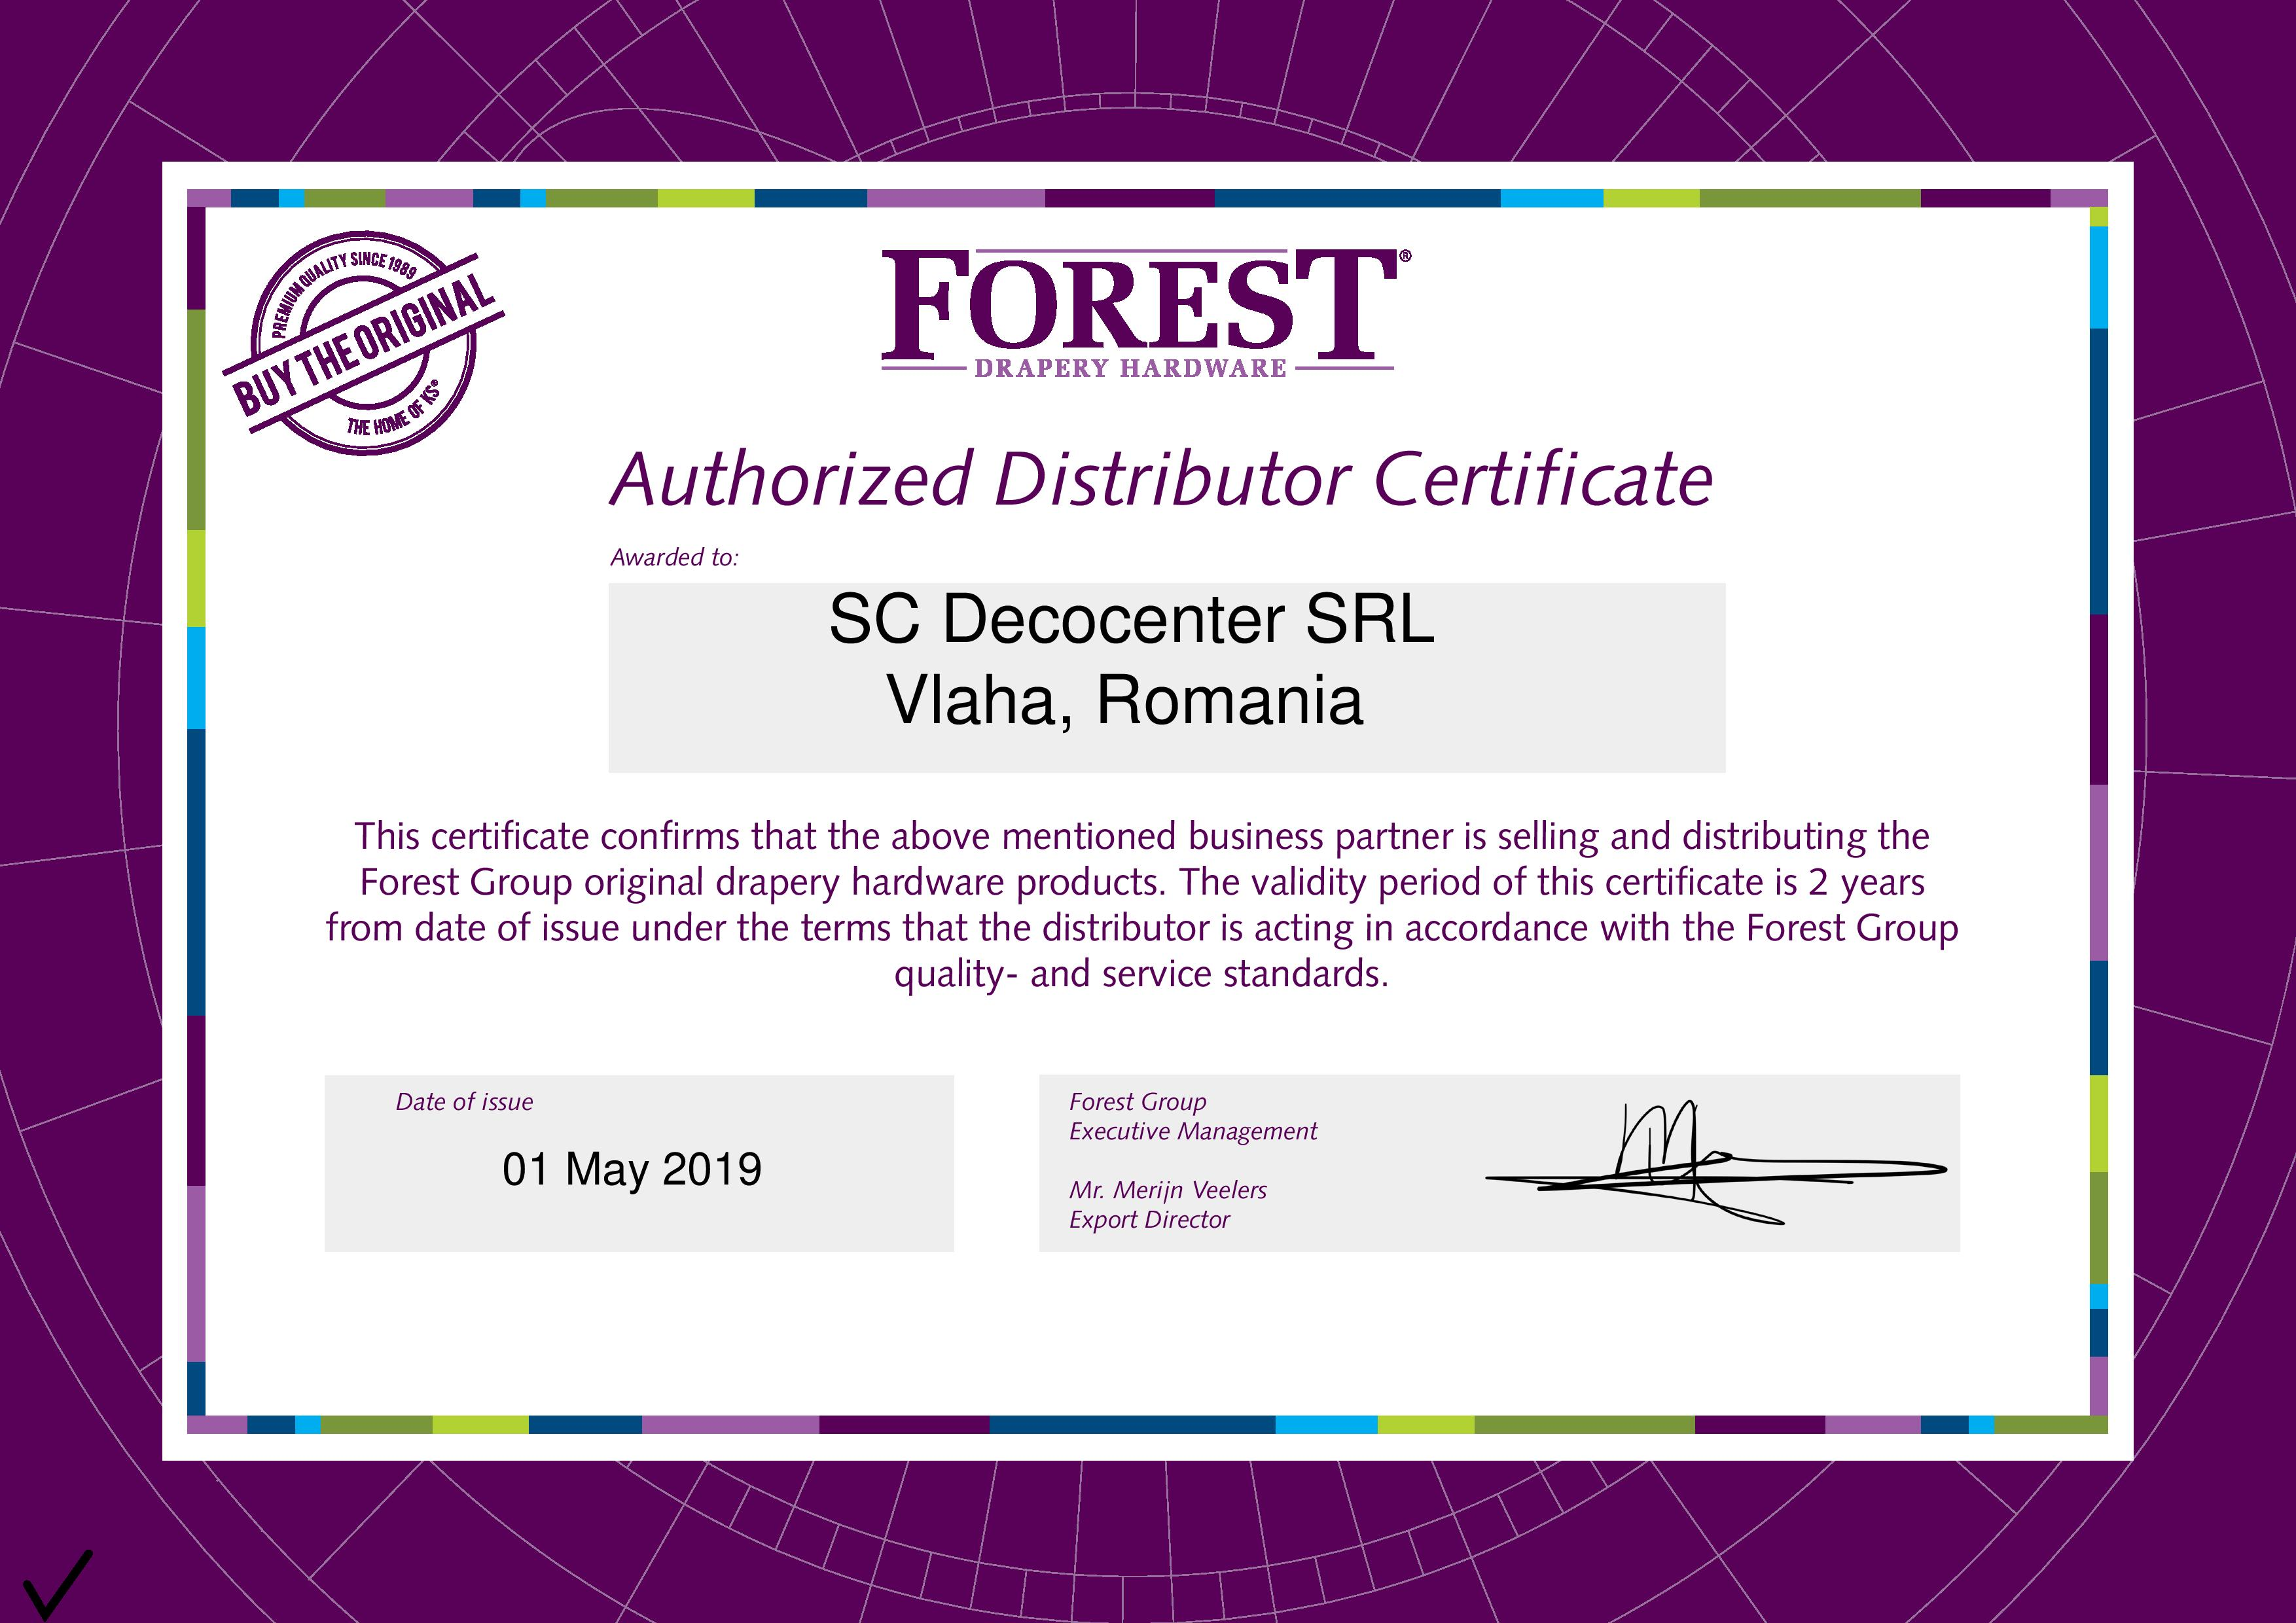 Forest distributor certificate 2019 for Deco Center